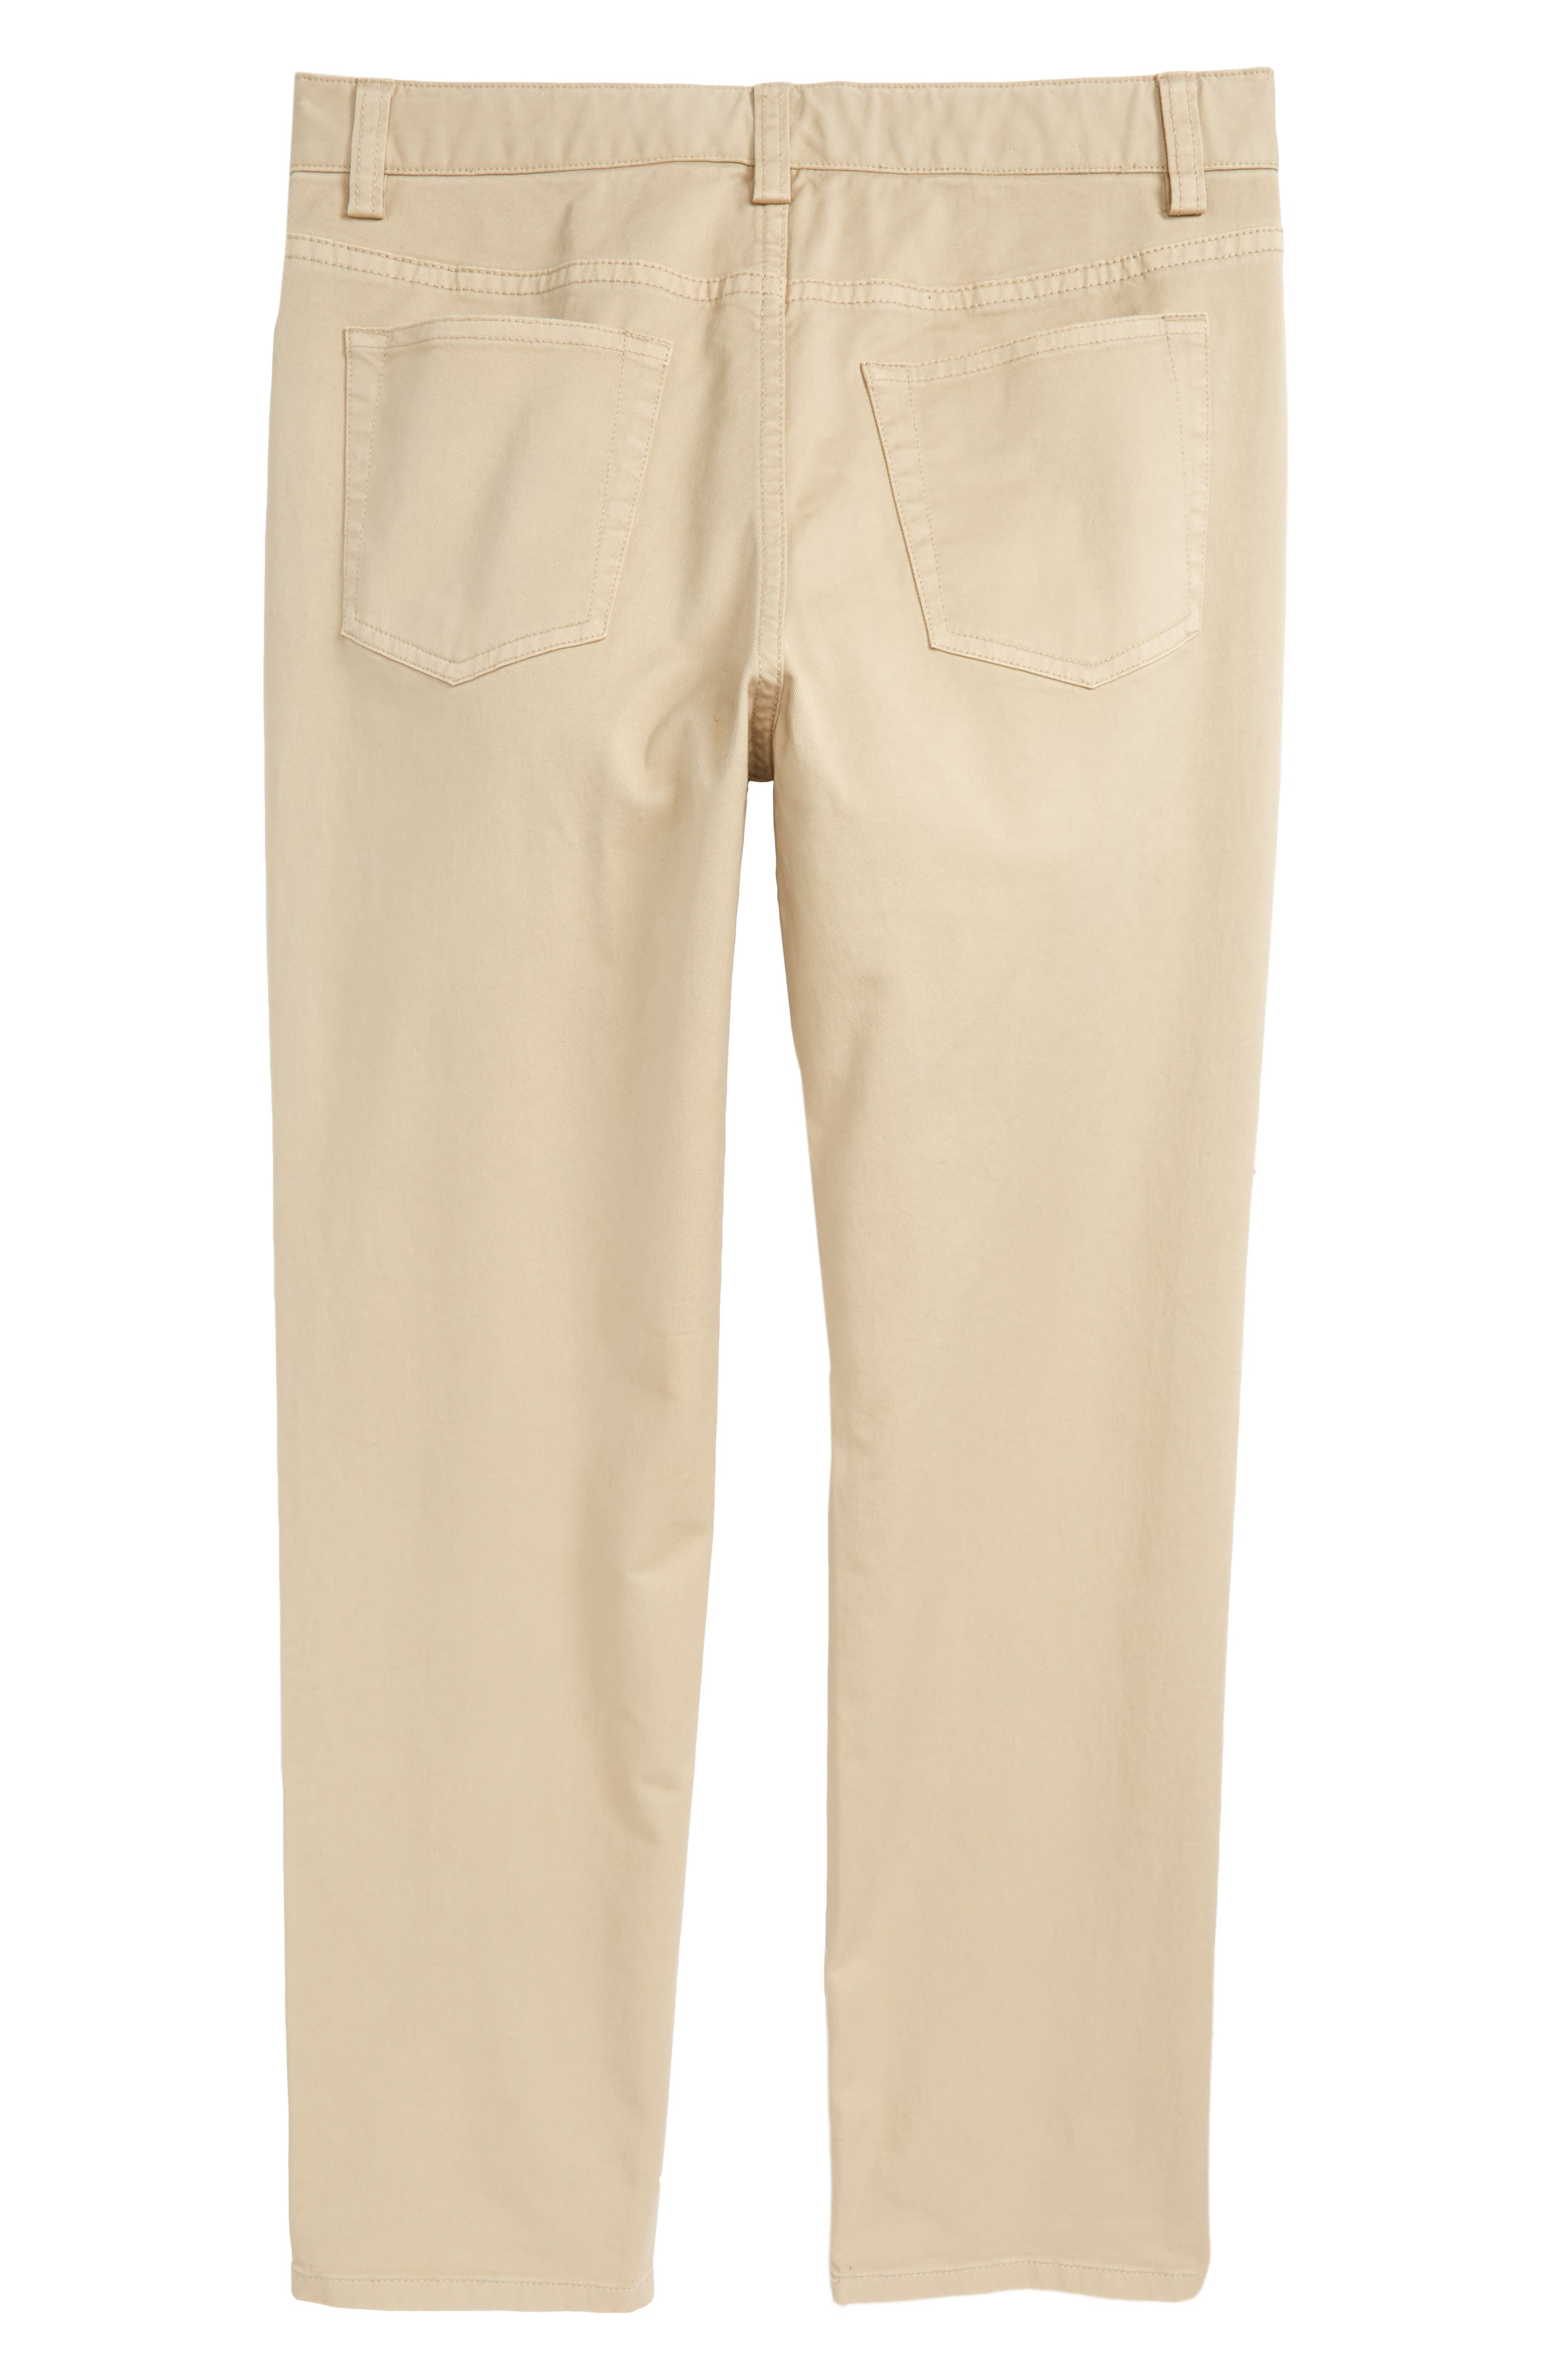 Stretch Twill Pants,                             Alternate thumbnail 3, color,